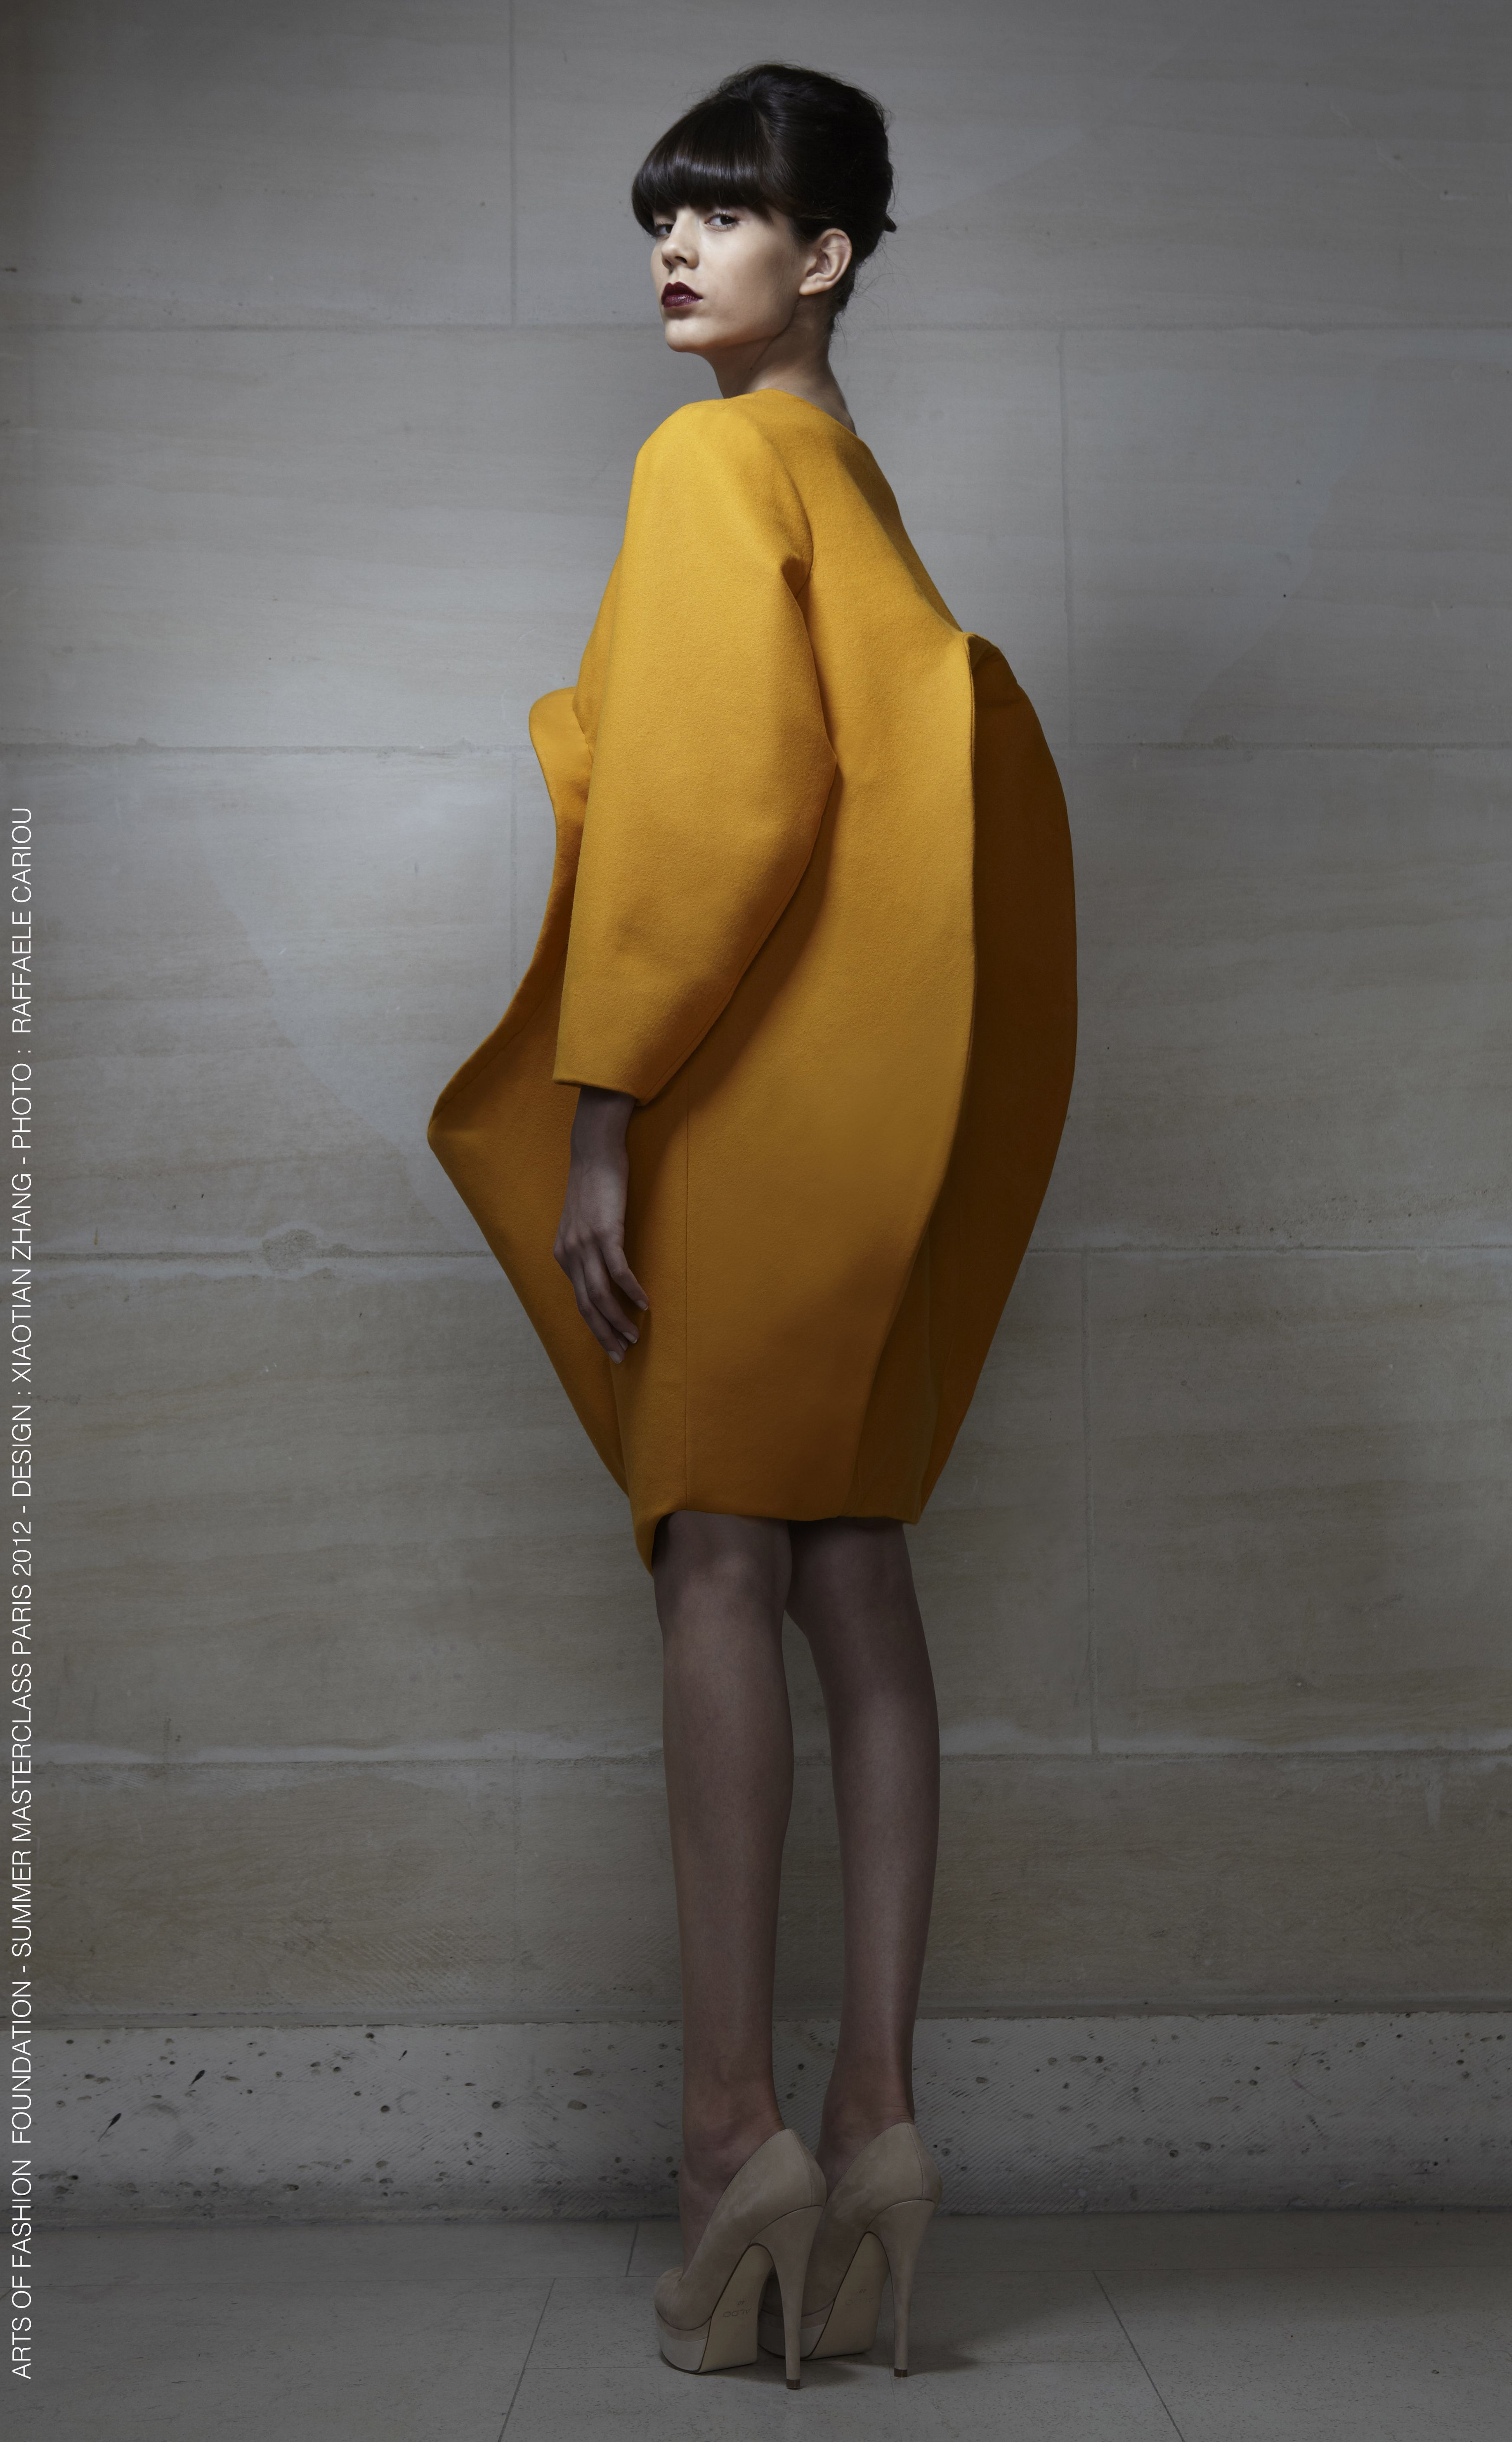 XIAOTIAN ZHANG SS 2012 | clothing design | Sculptural ...